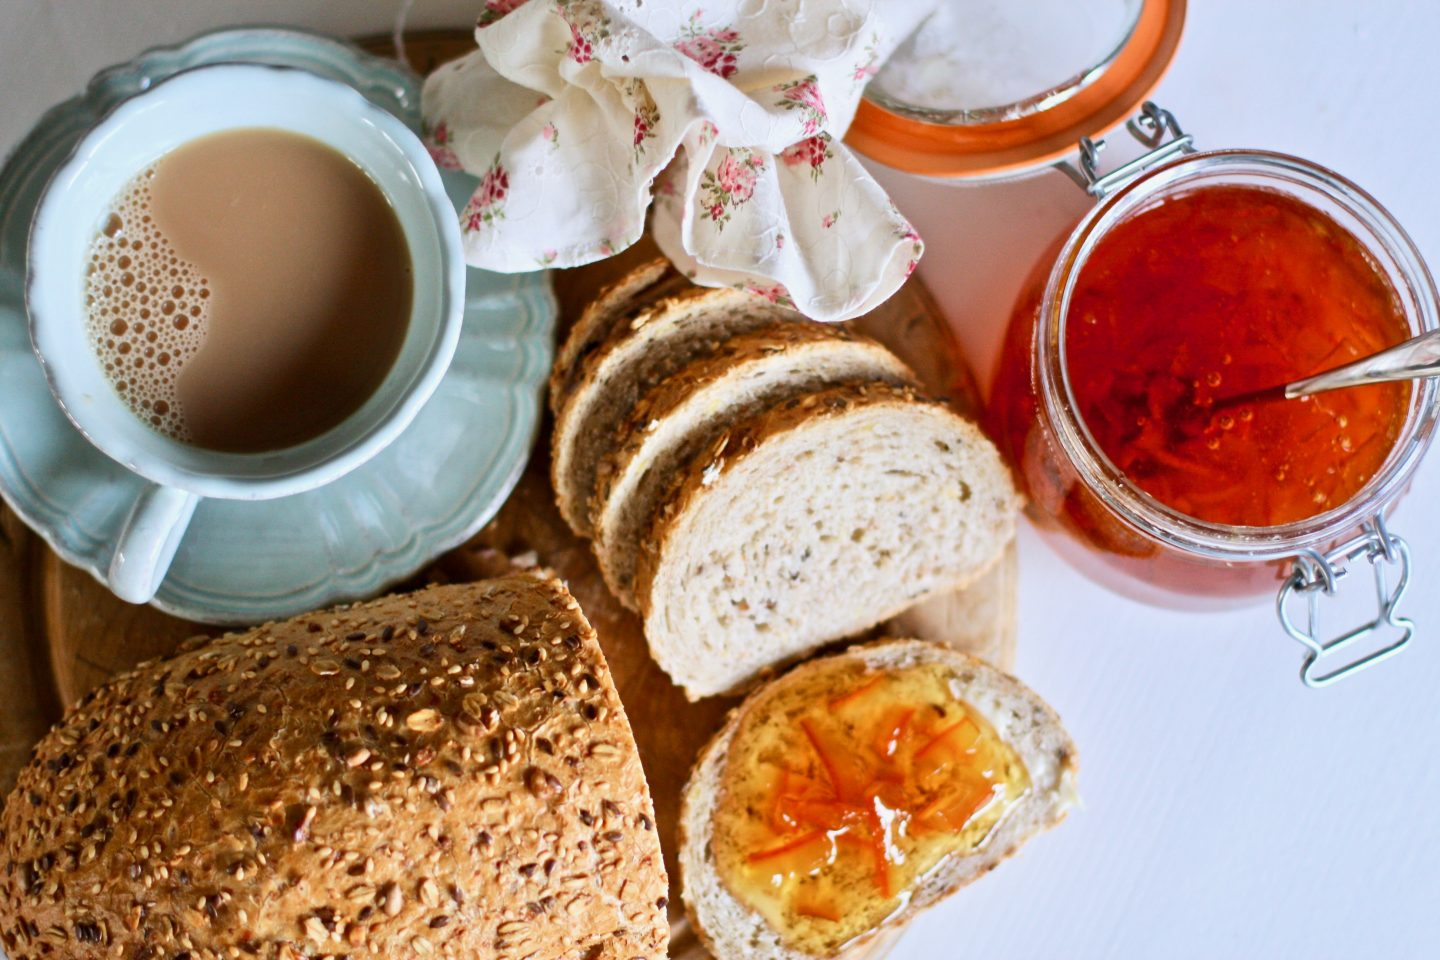 How to Make Marmalade